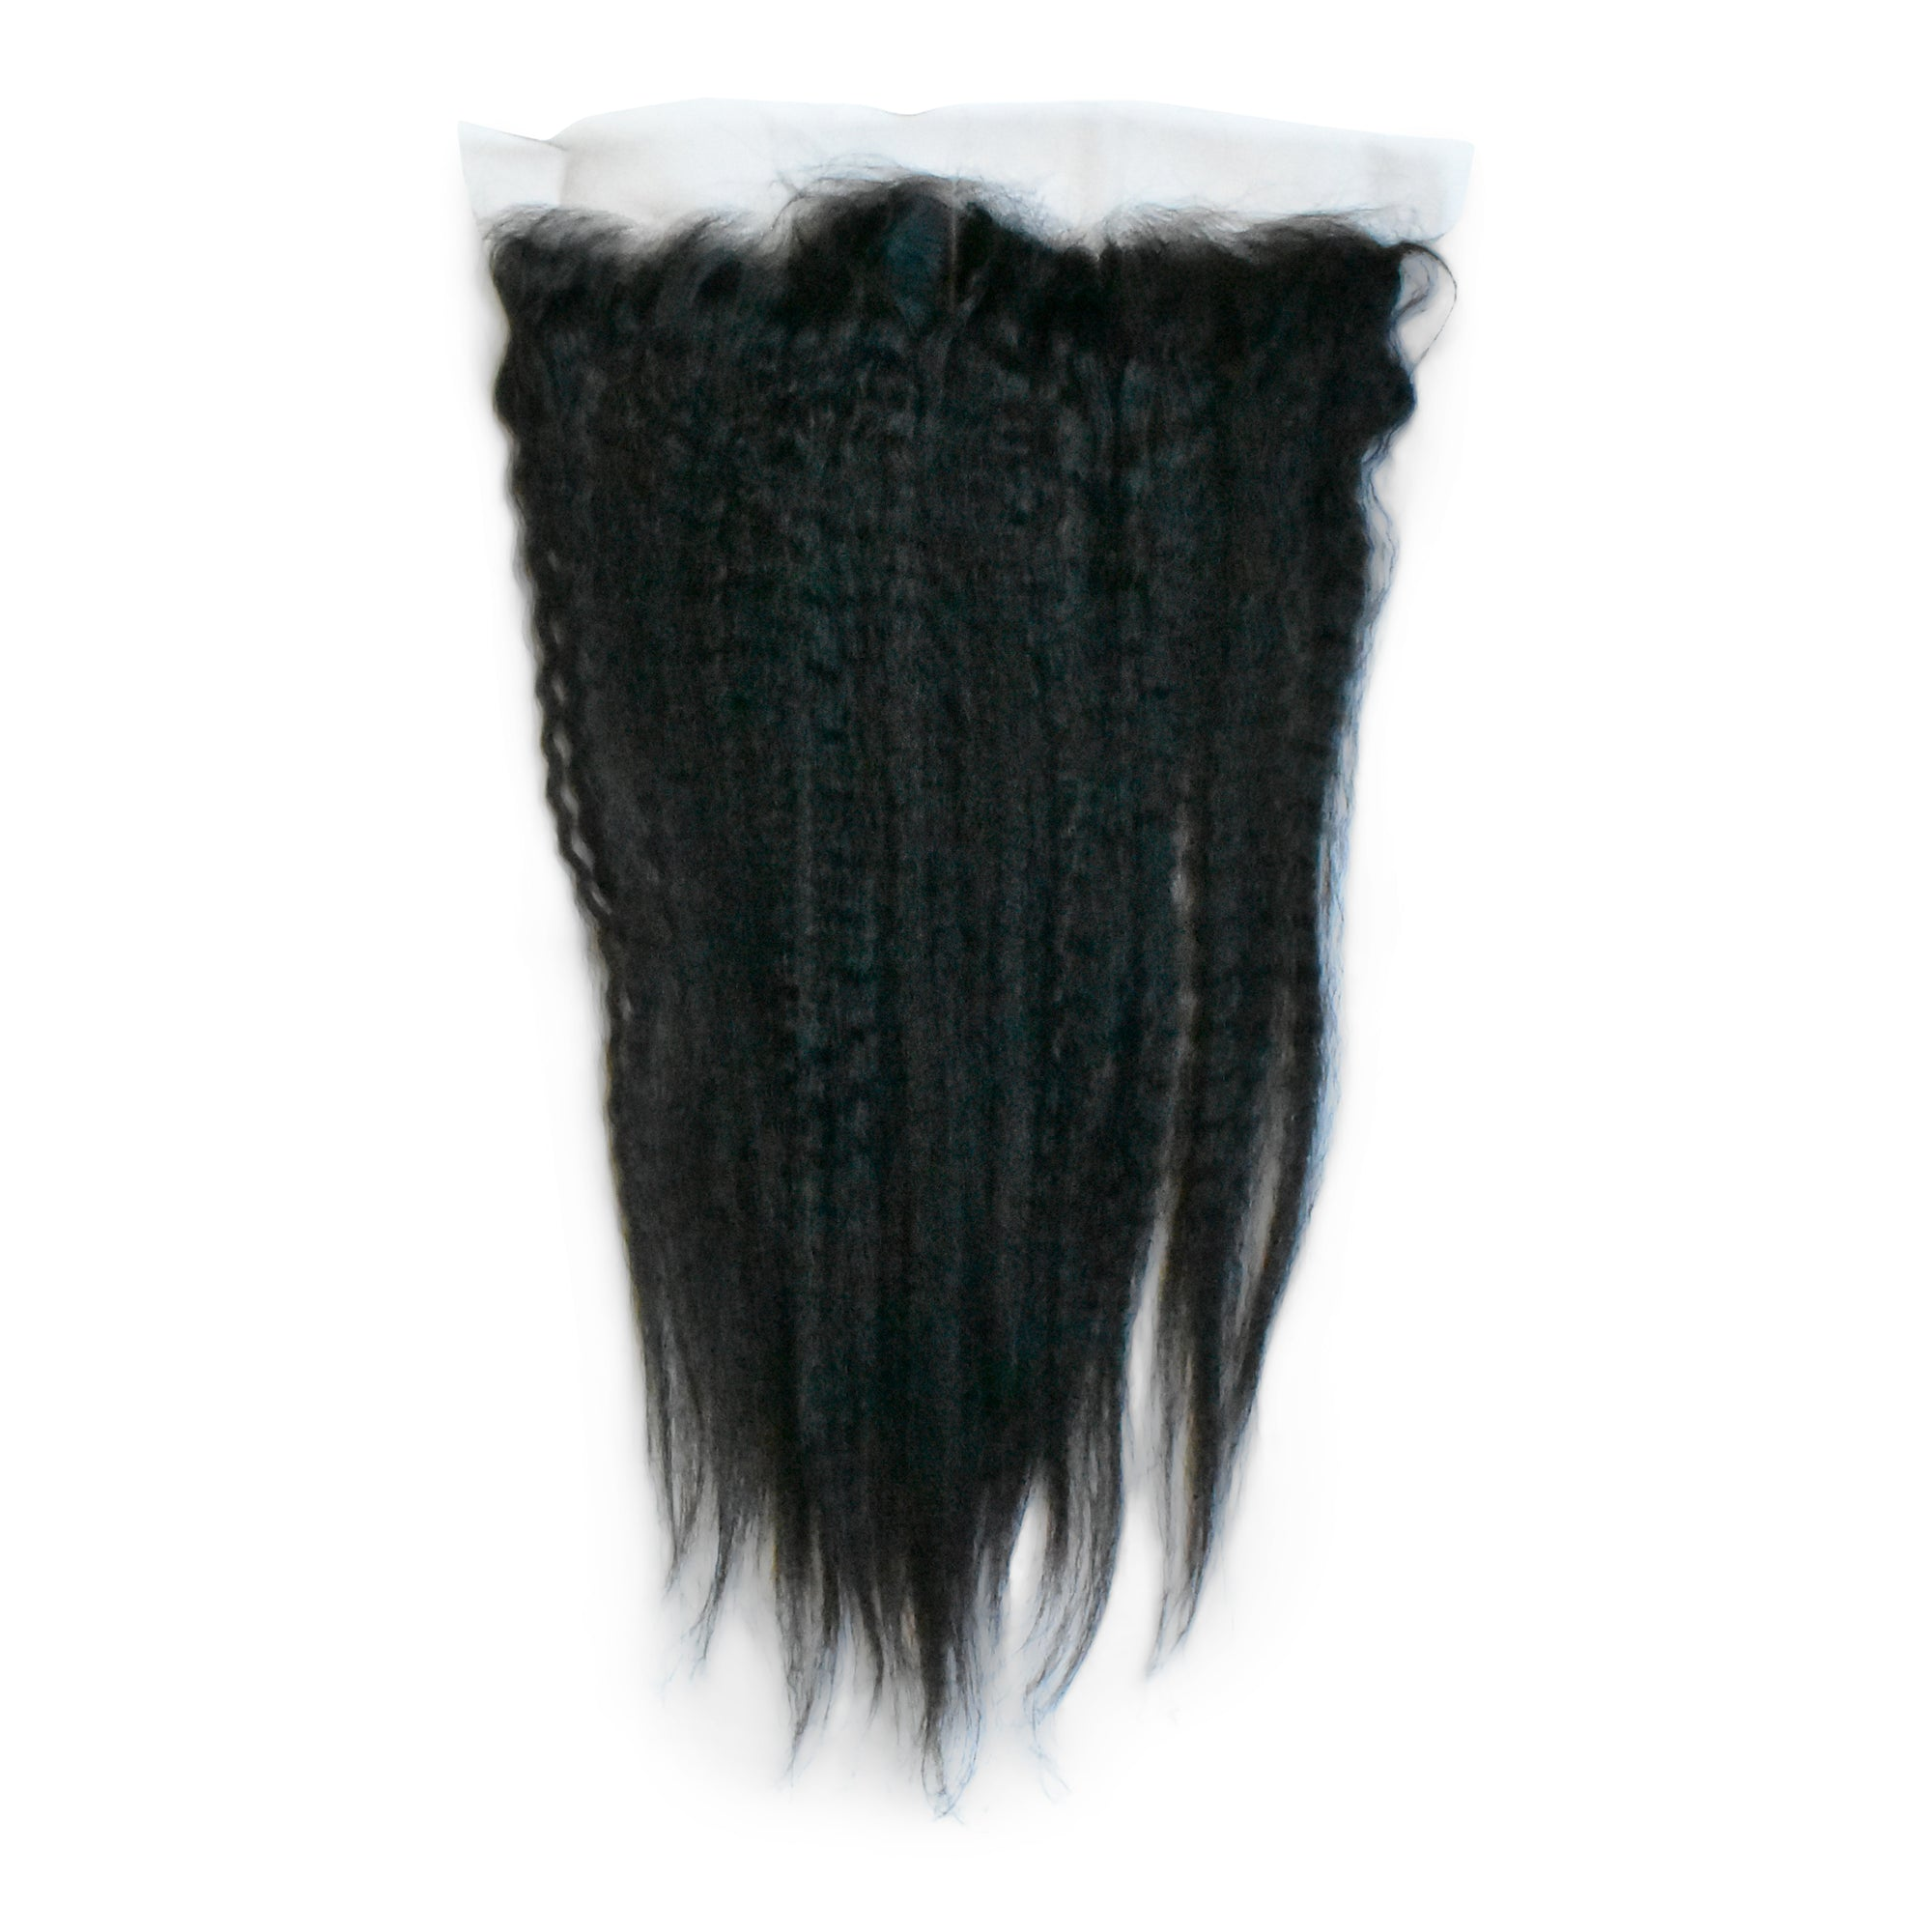 Our afro blow-out frontals are a great match for 4B/4C hair!